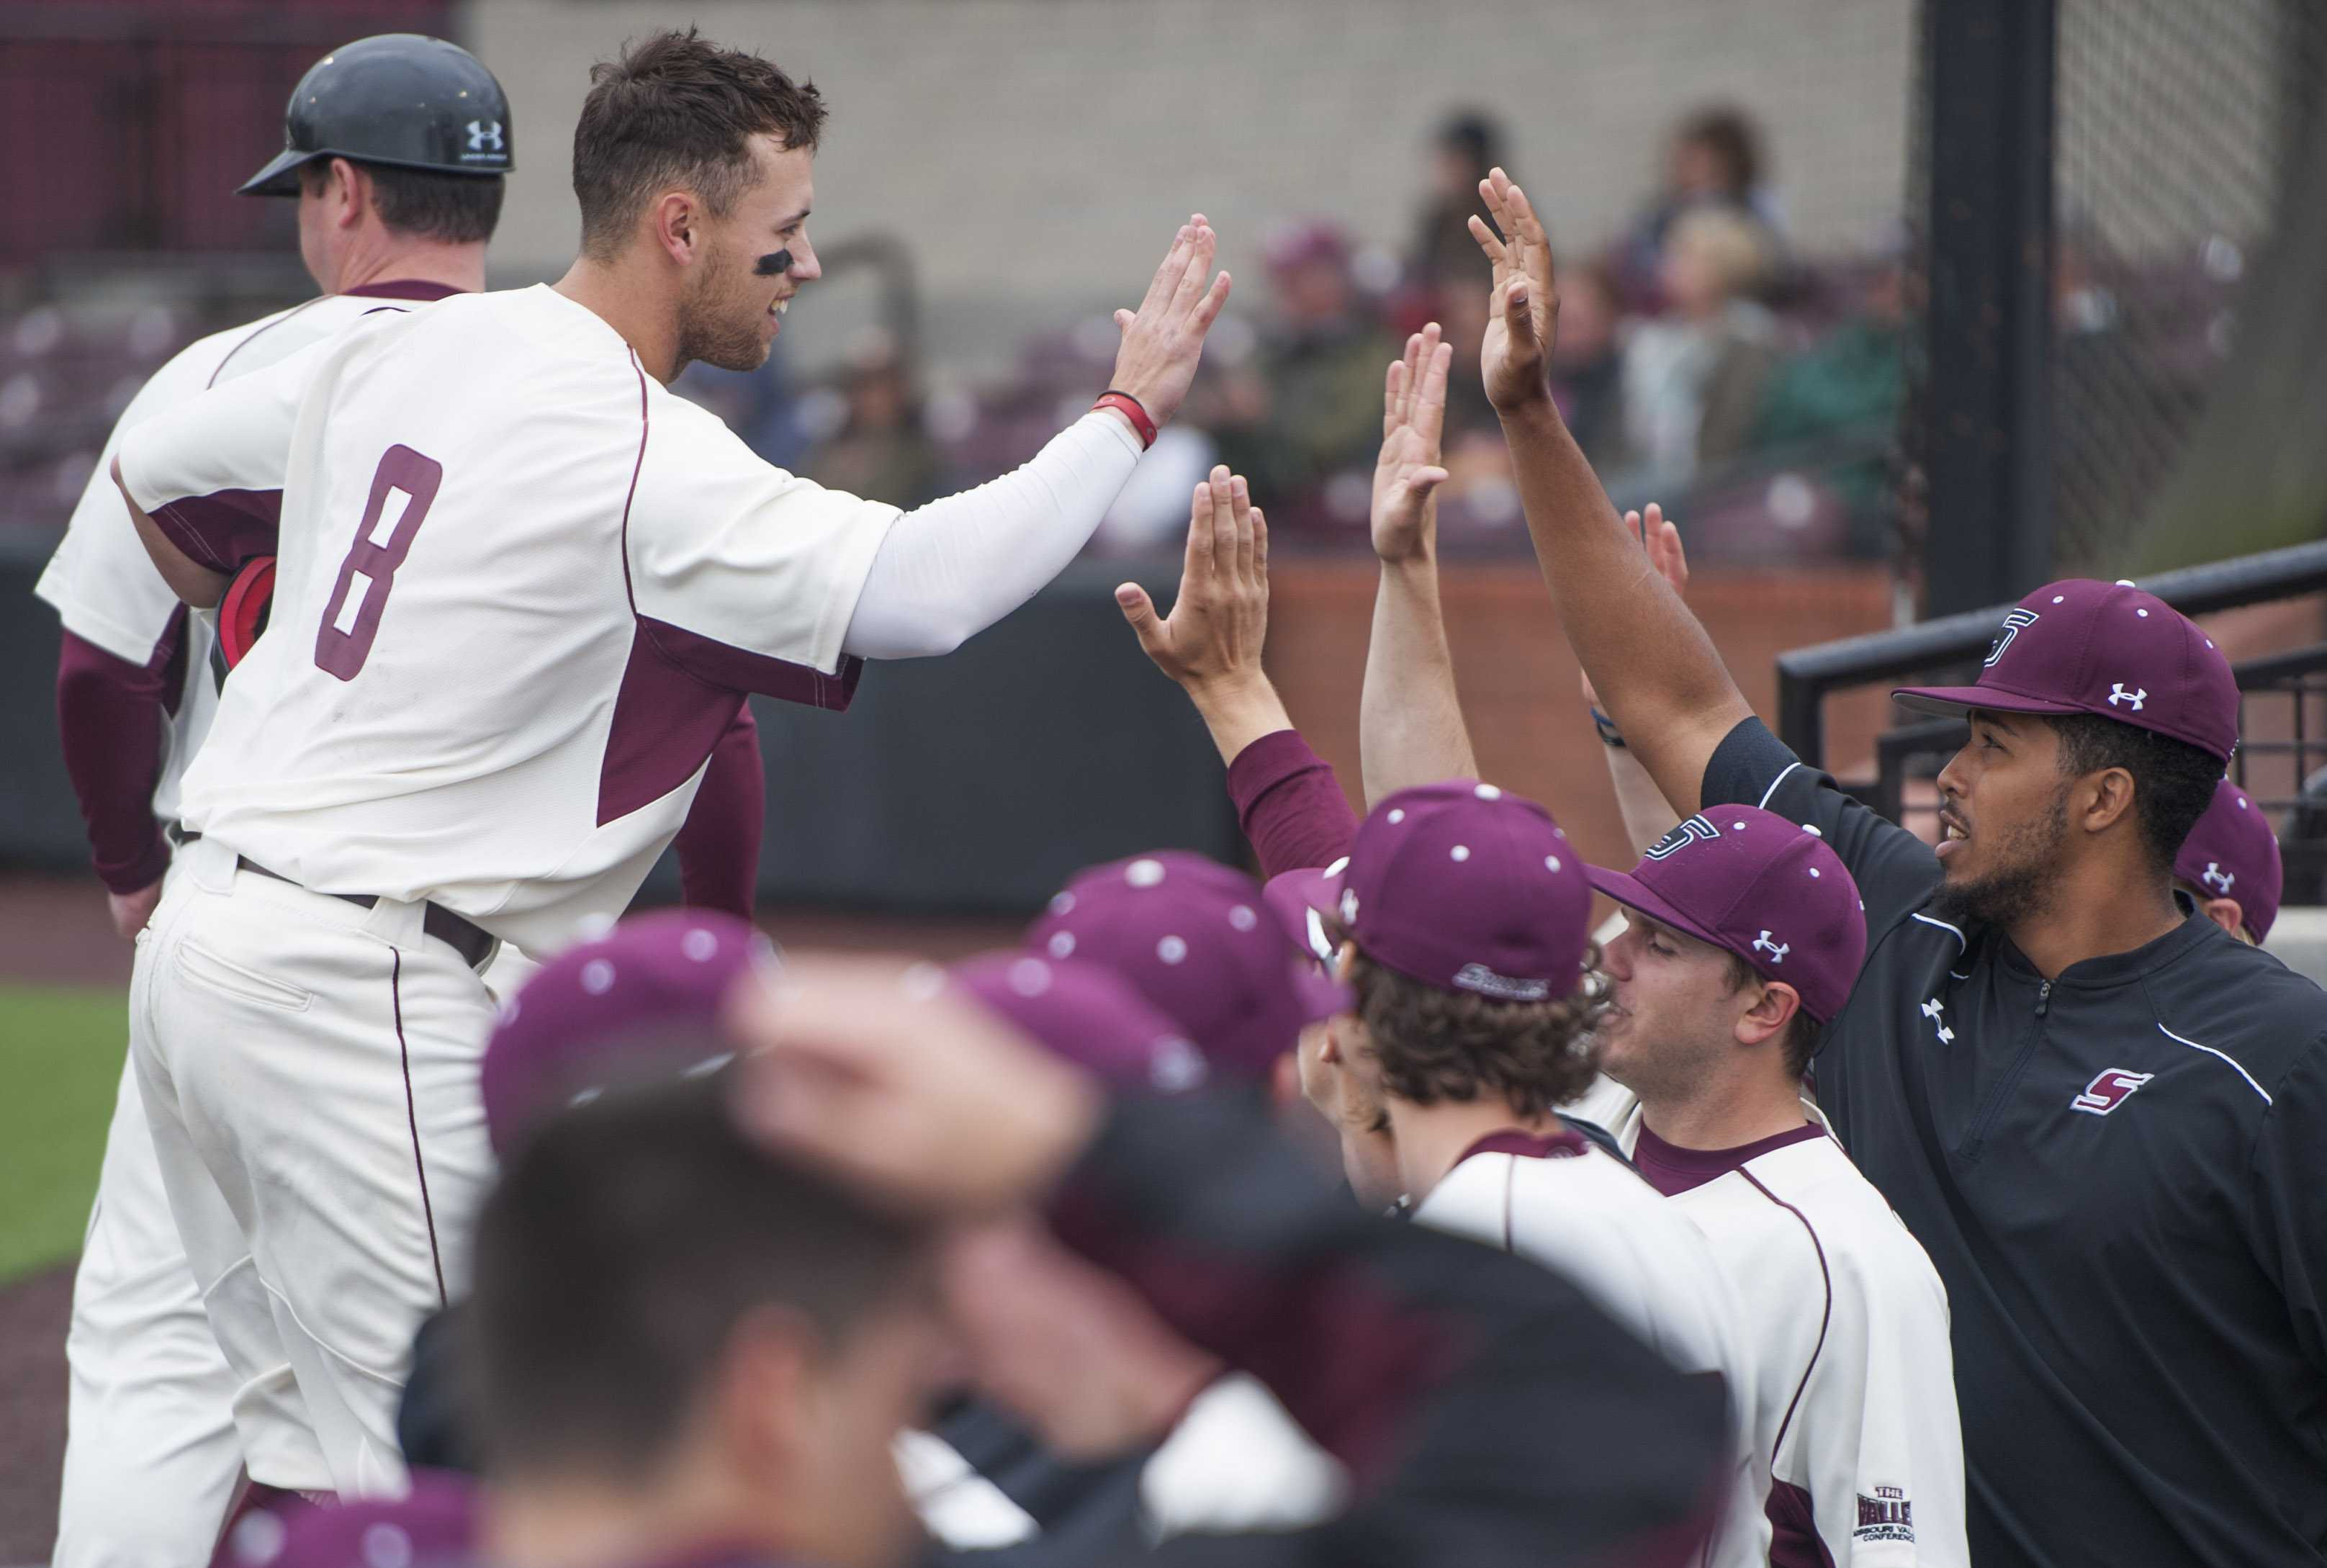 Senior outfielder Jake Hand high-fives teammates in the bullpen Saturday, March 25, 2017, after scoring a run against the Jacksonville State Gamecocks. The Salukis beat the Gamecocks 5-4 during the second of a three-game series at Itchy Jones Stadium. (Bill Lukitsch | @lukitsbill)